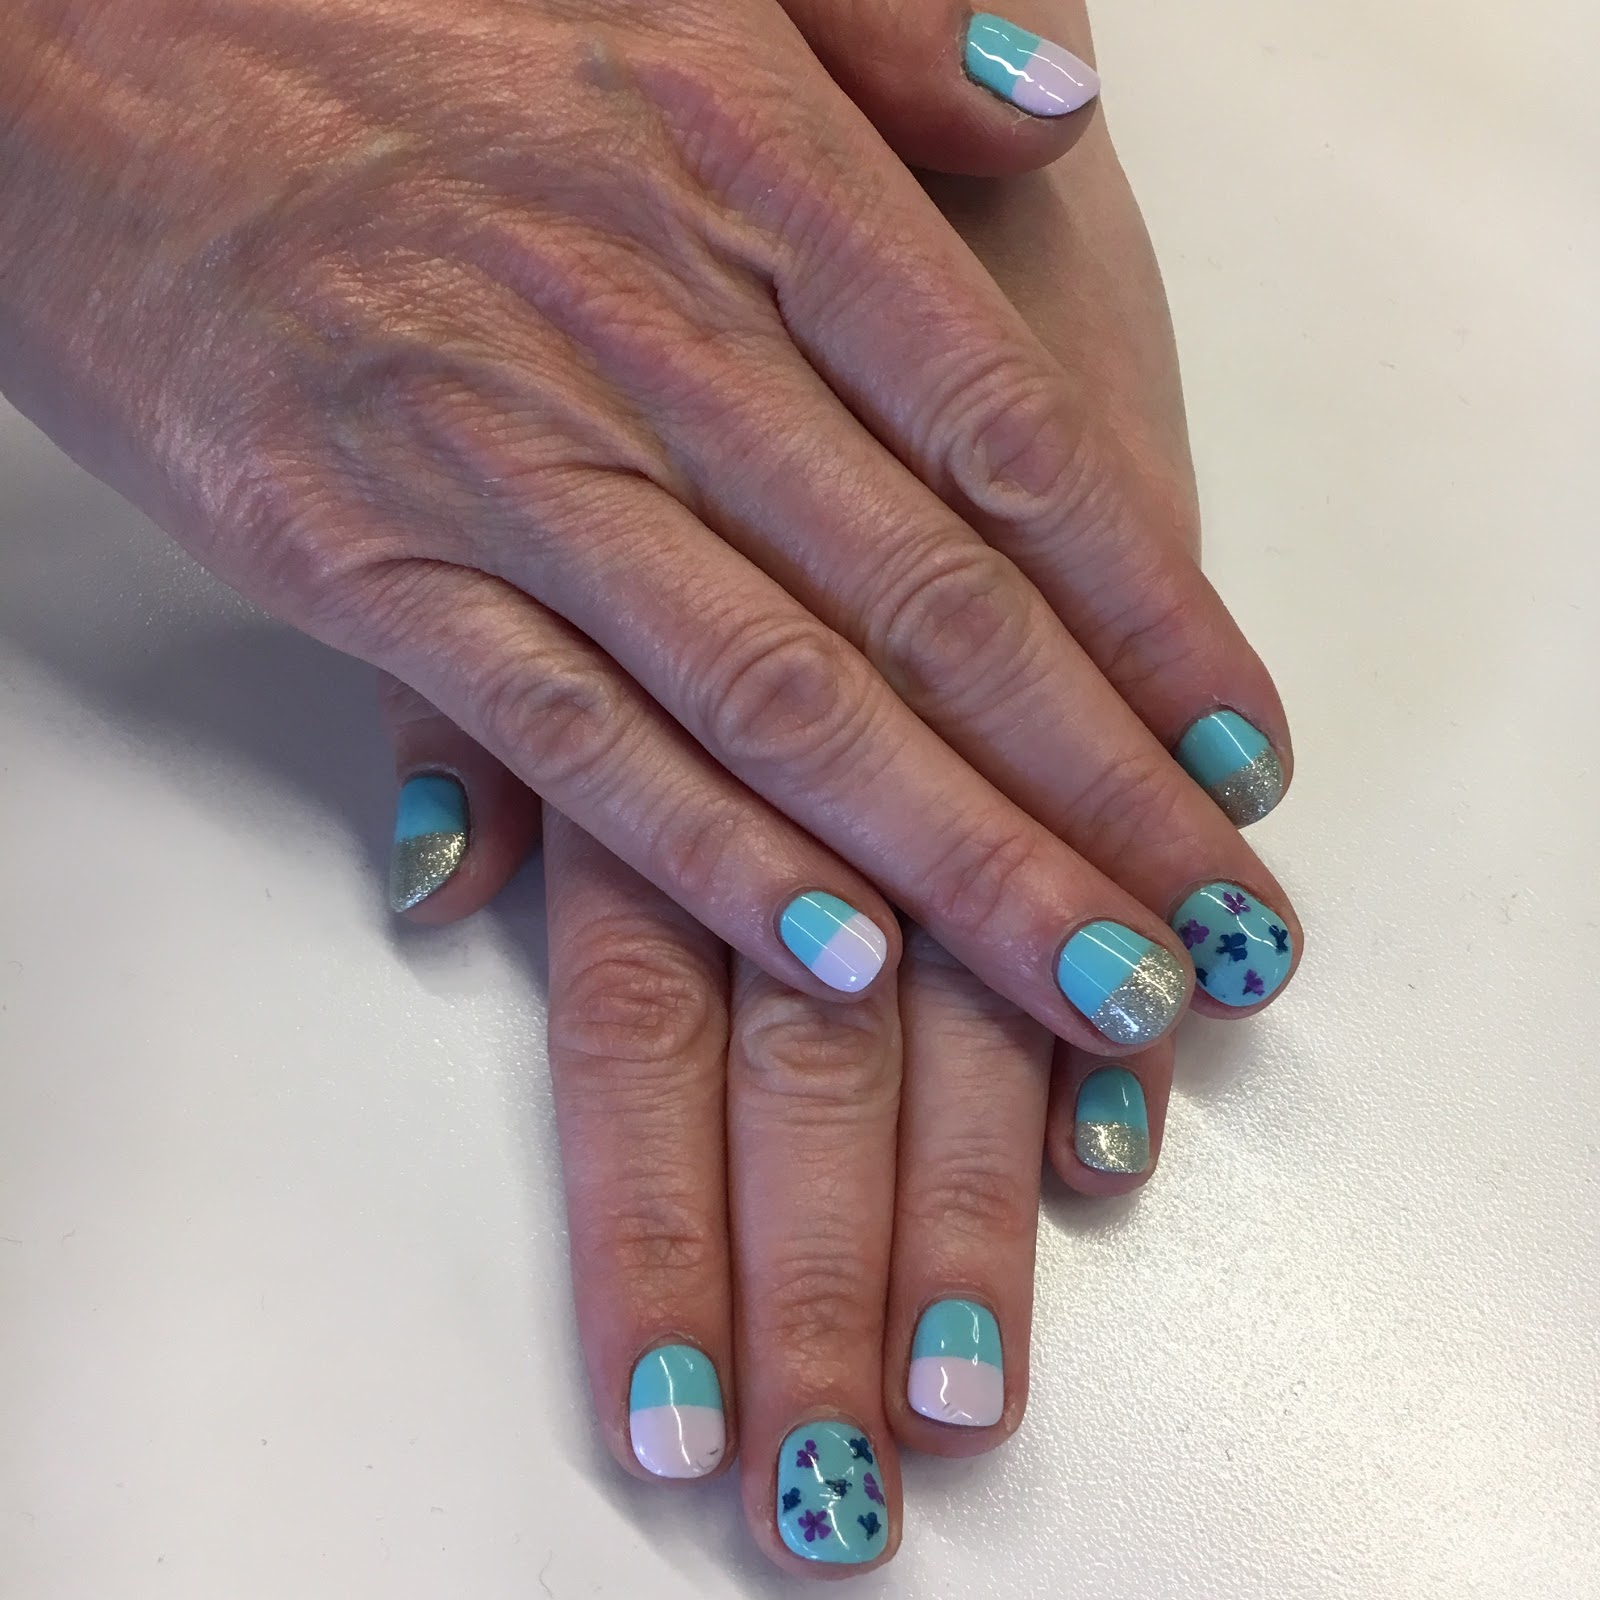 Best Nail Art Salons In Los Angeles: The Beauty Of Life